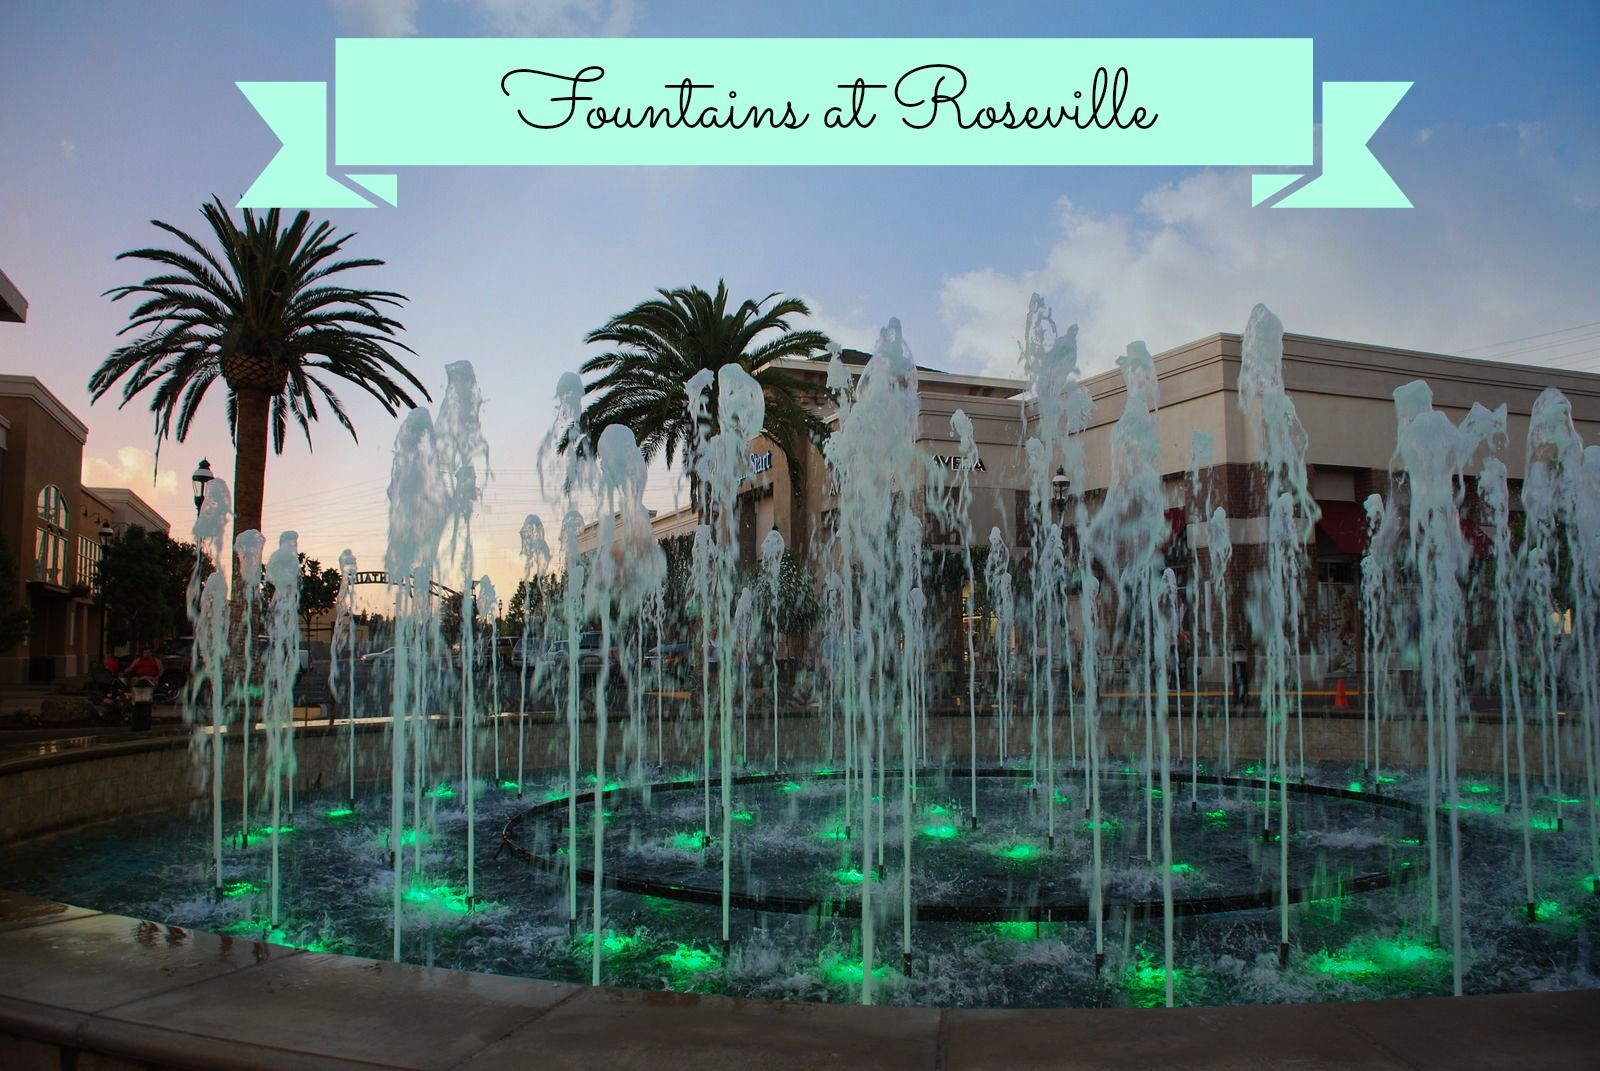 Bring The Kids To Some Fountain Fun Fountains Roseville California Roseville